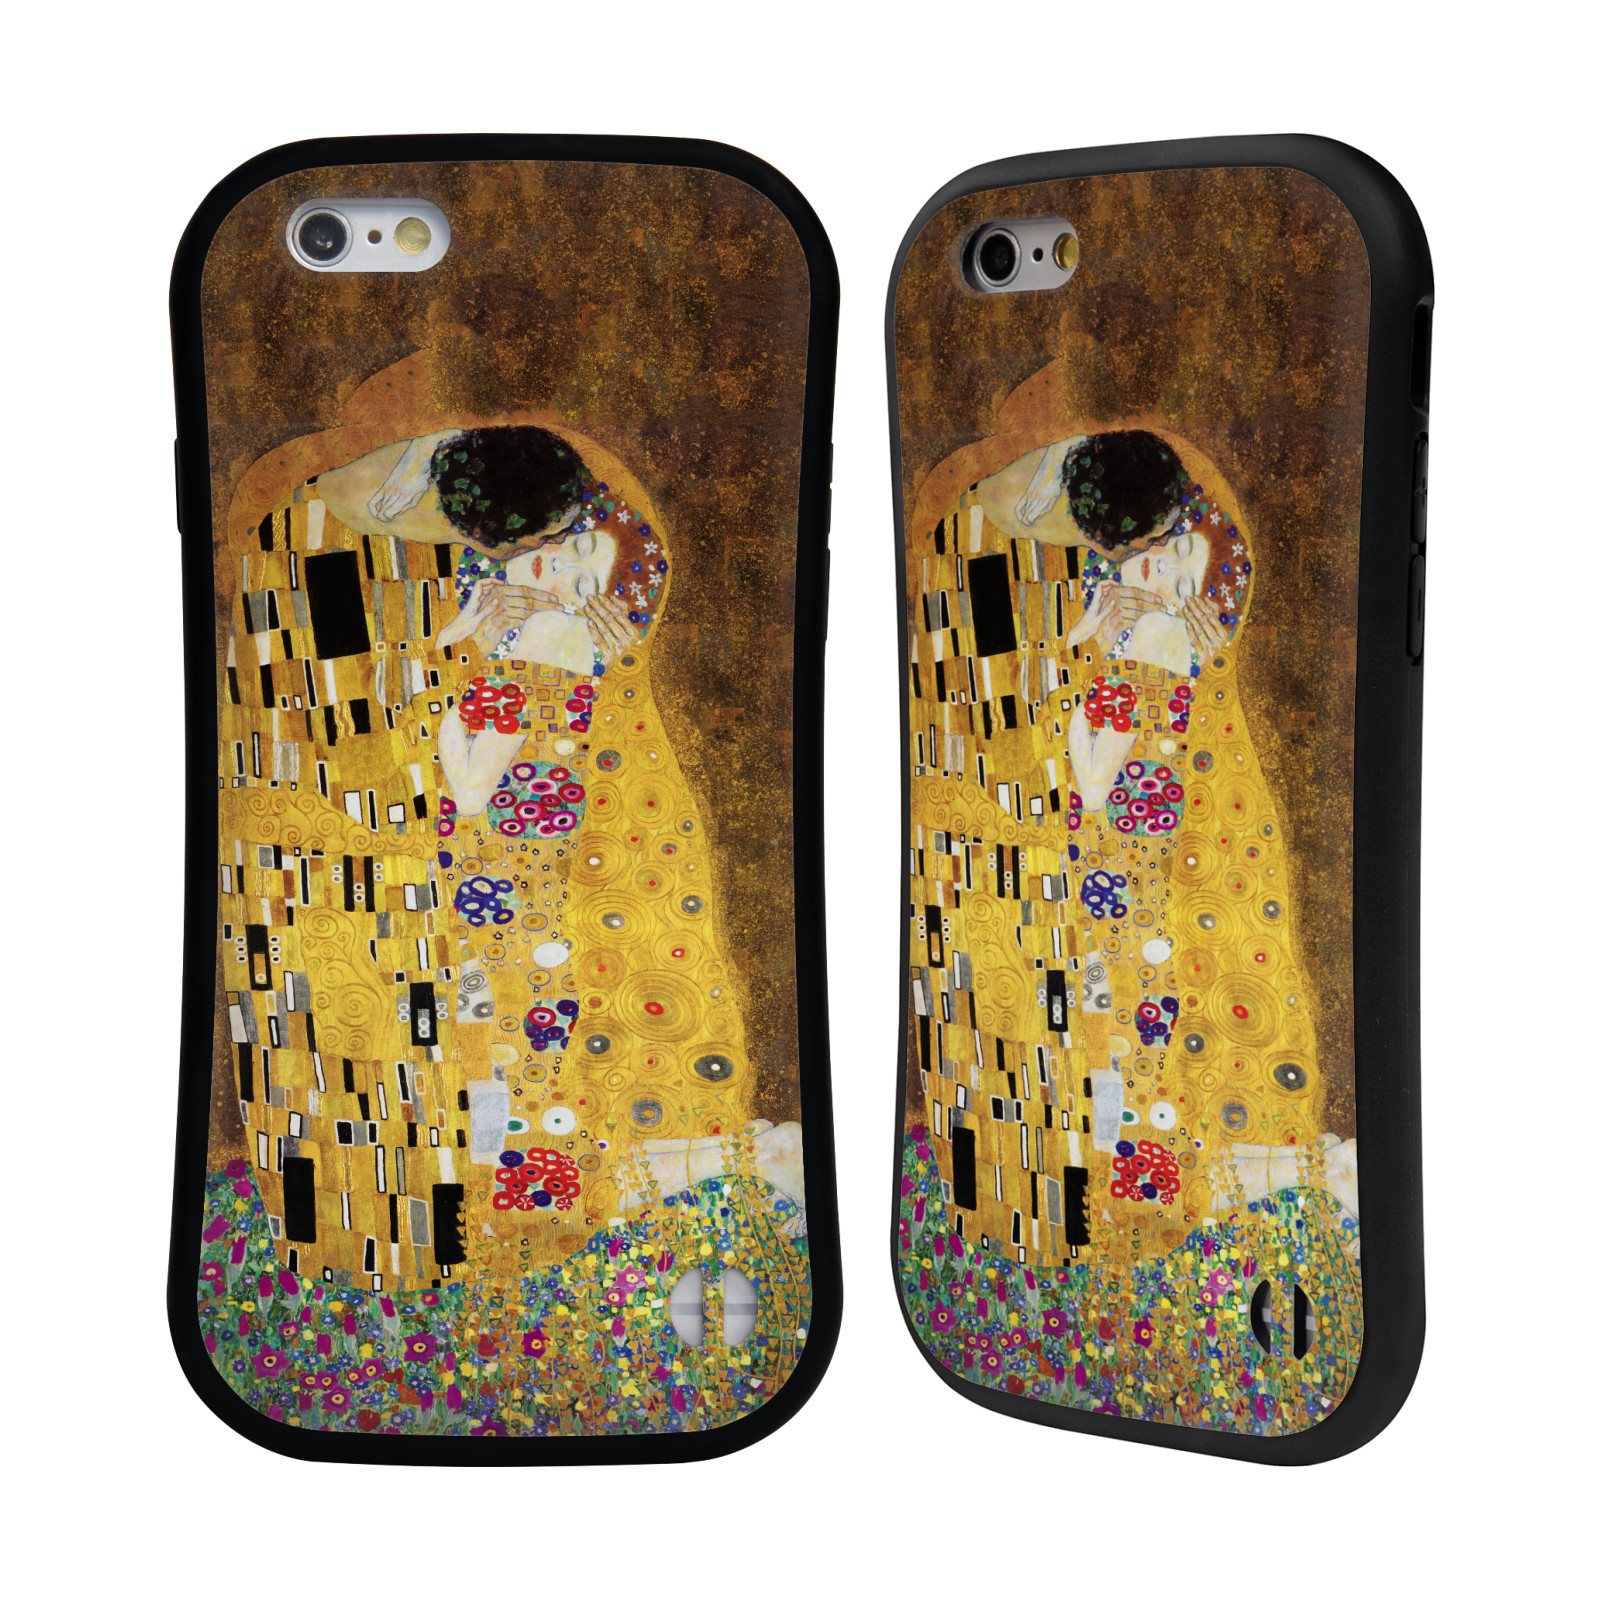 OFFICIAL-MASTERS-COLLECTION-PAINTINGS-2-HYBRID-CASE-FOR-APPLE-iPHONES-PHONES